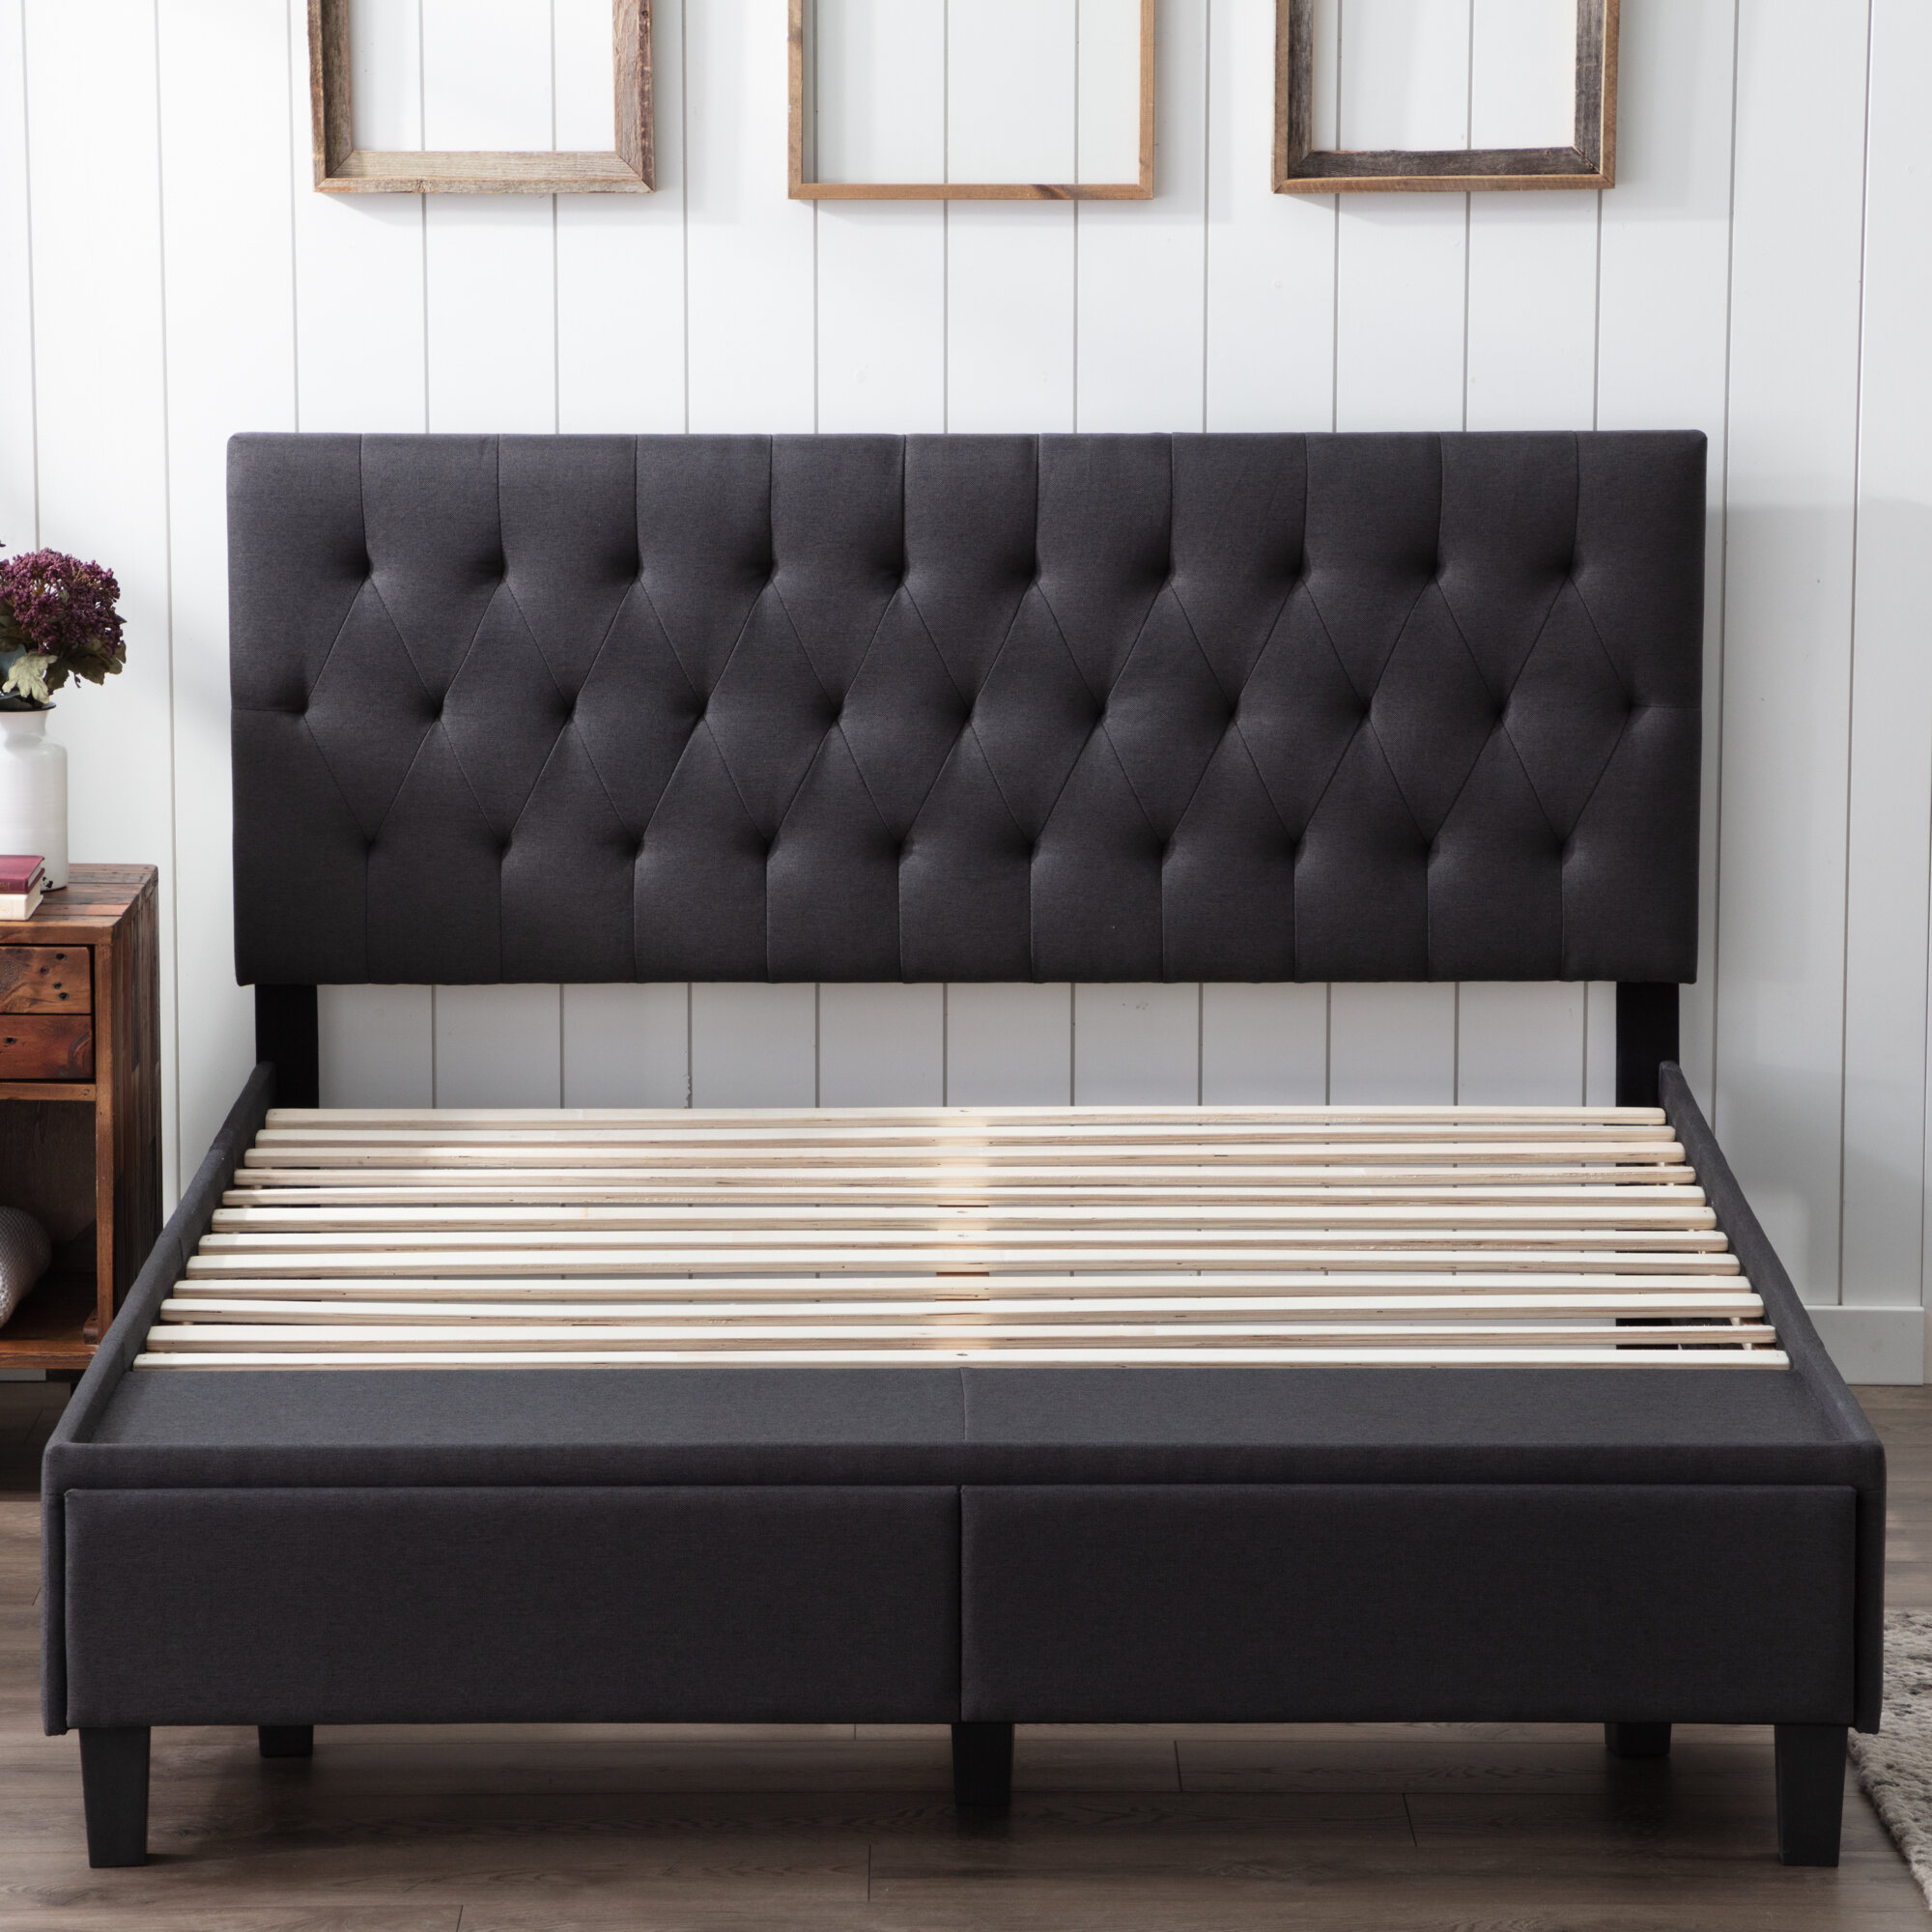 Black Storage Included Beds Free Shipping Over 35 Wayfair